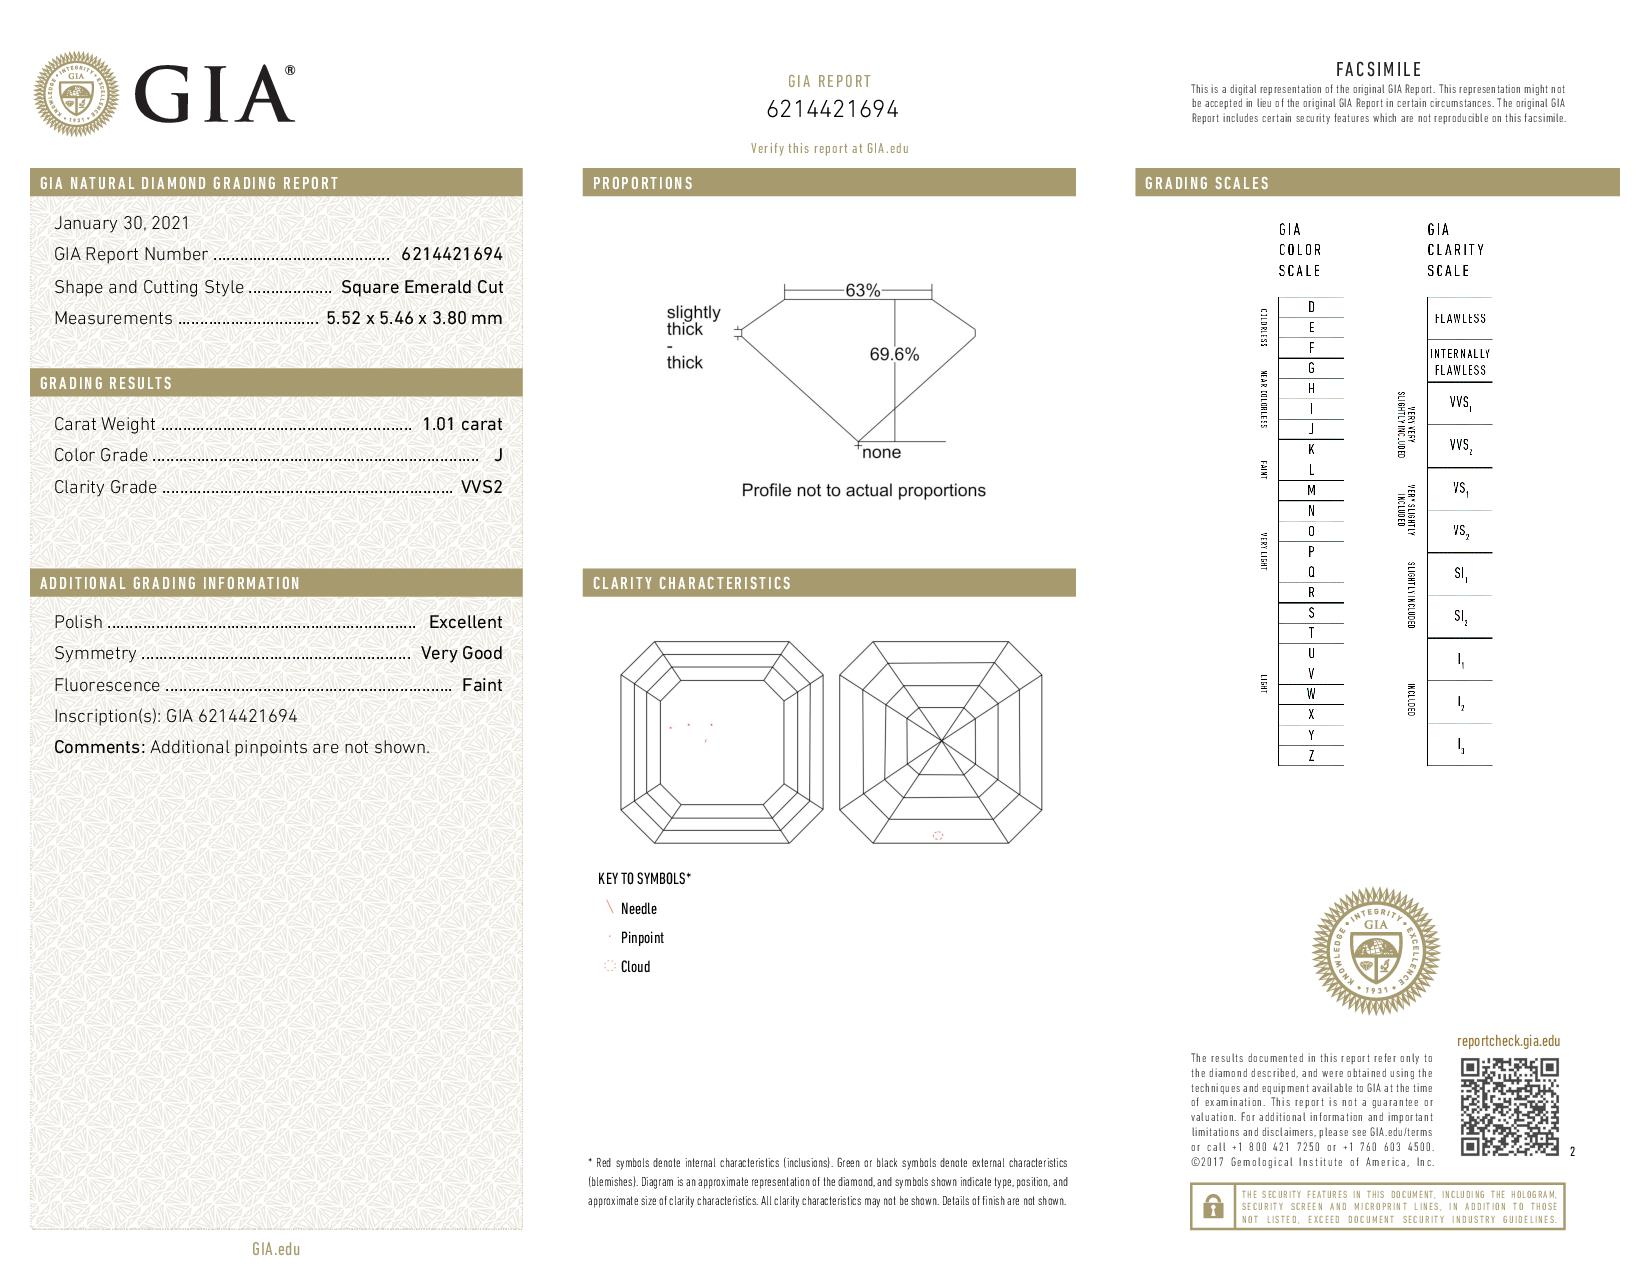 This is a 1.01 carat asscher shape, J color, VVS2 clarity natural diamond accompanied by a GIA grading report.